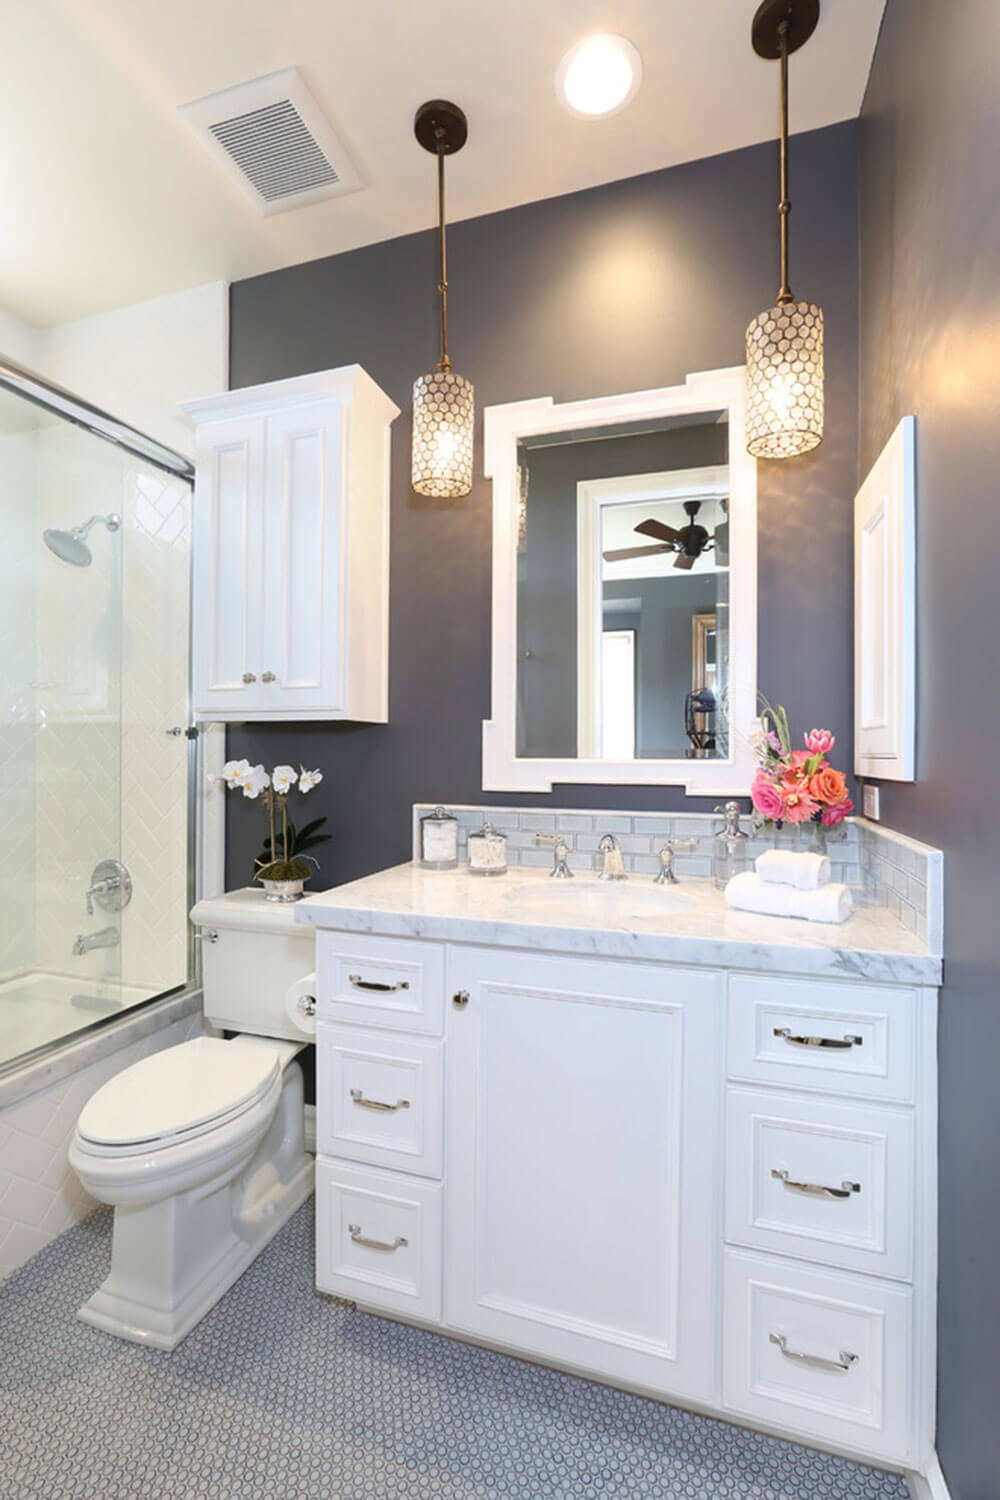 uncluttered color scheme in dark gray and white - Small Bathroom Design Ideas Color Schemes